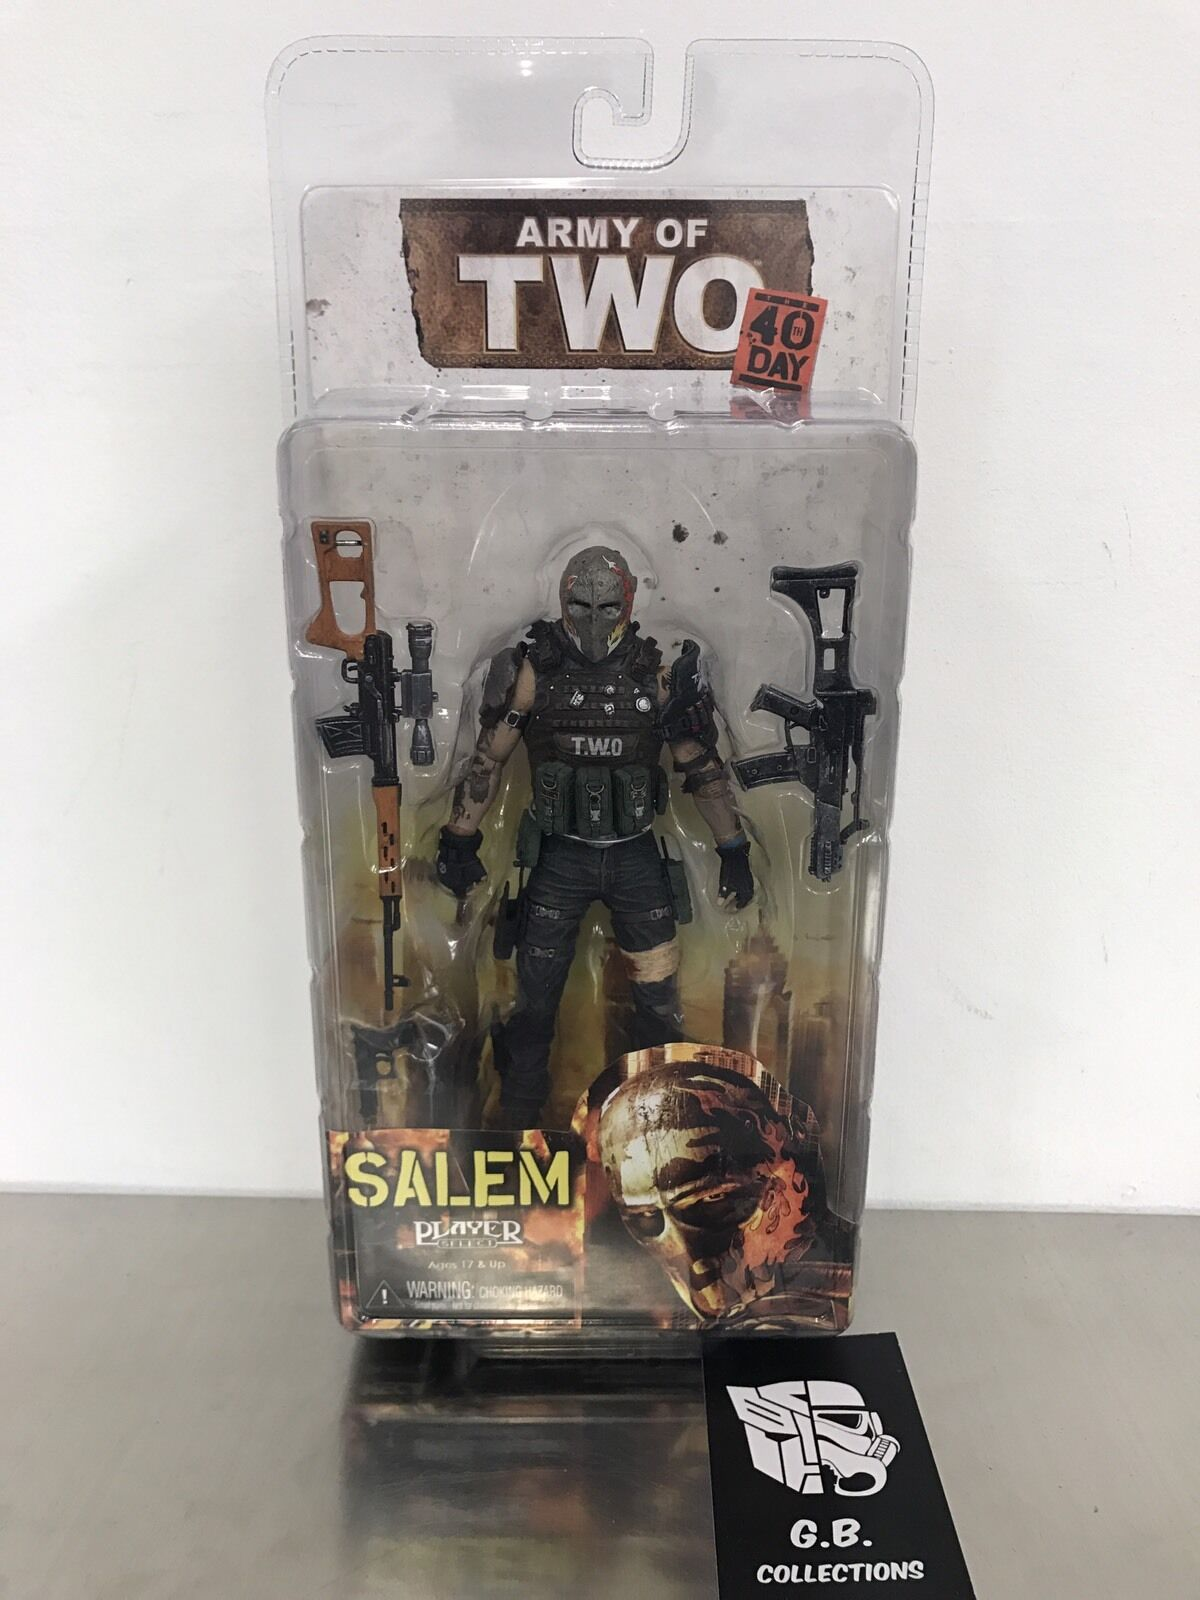 NECA Army of Two 40th Day Salem Action Figur New Sealed